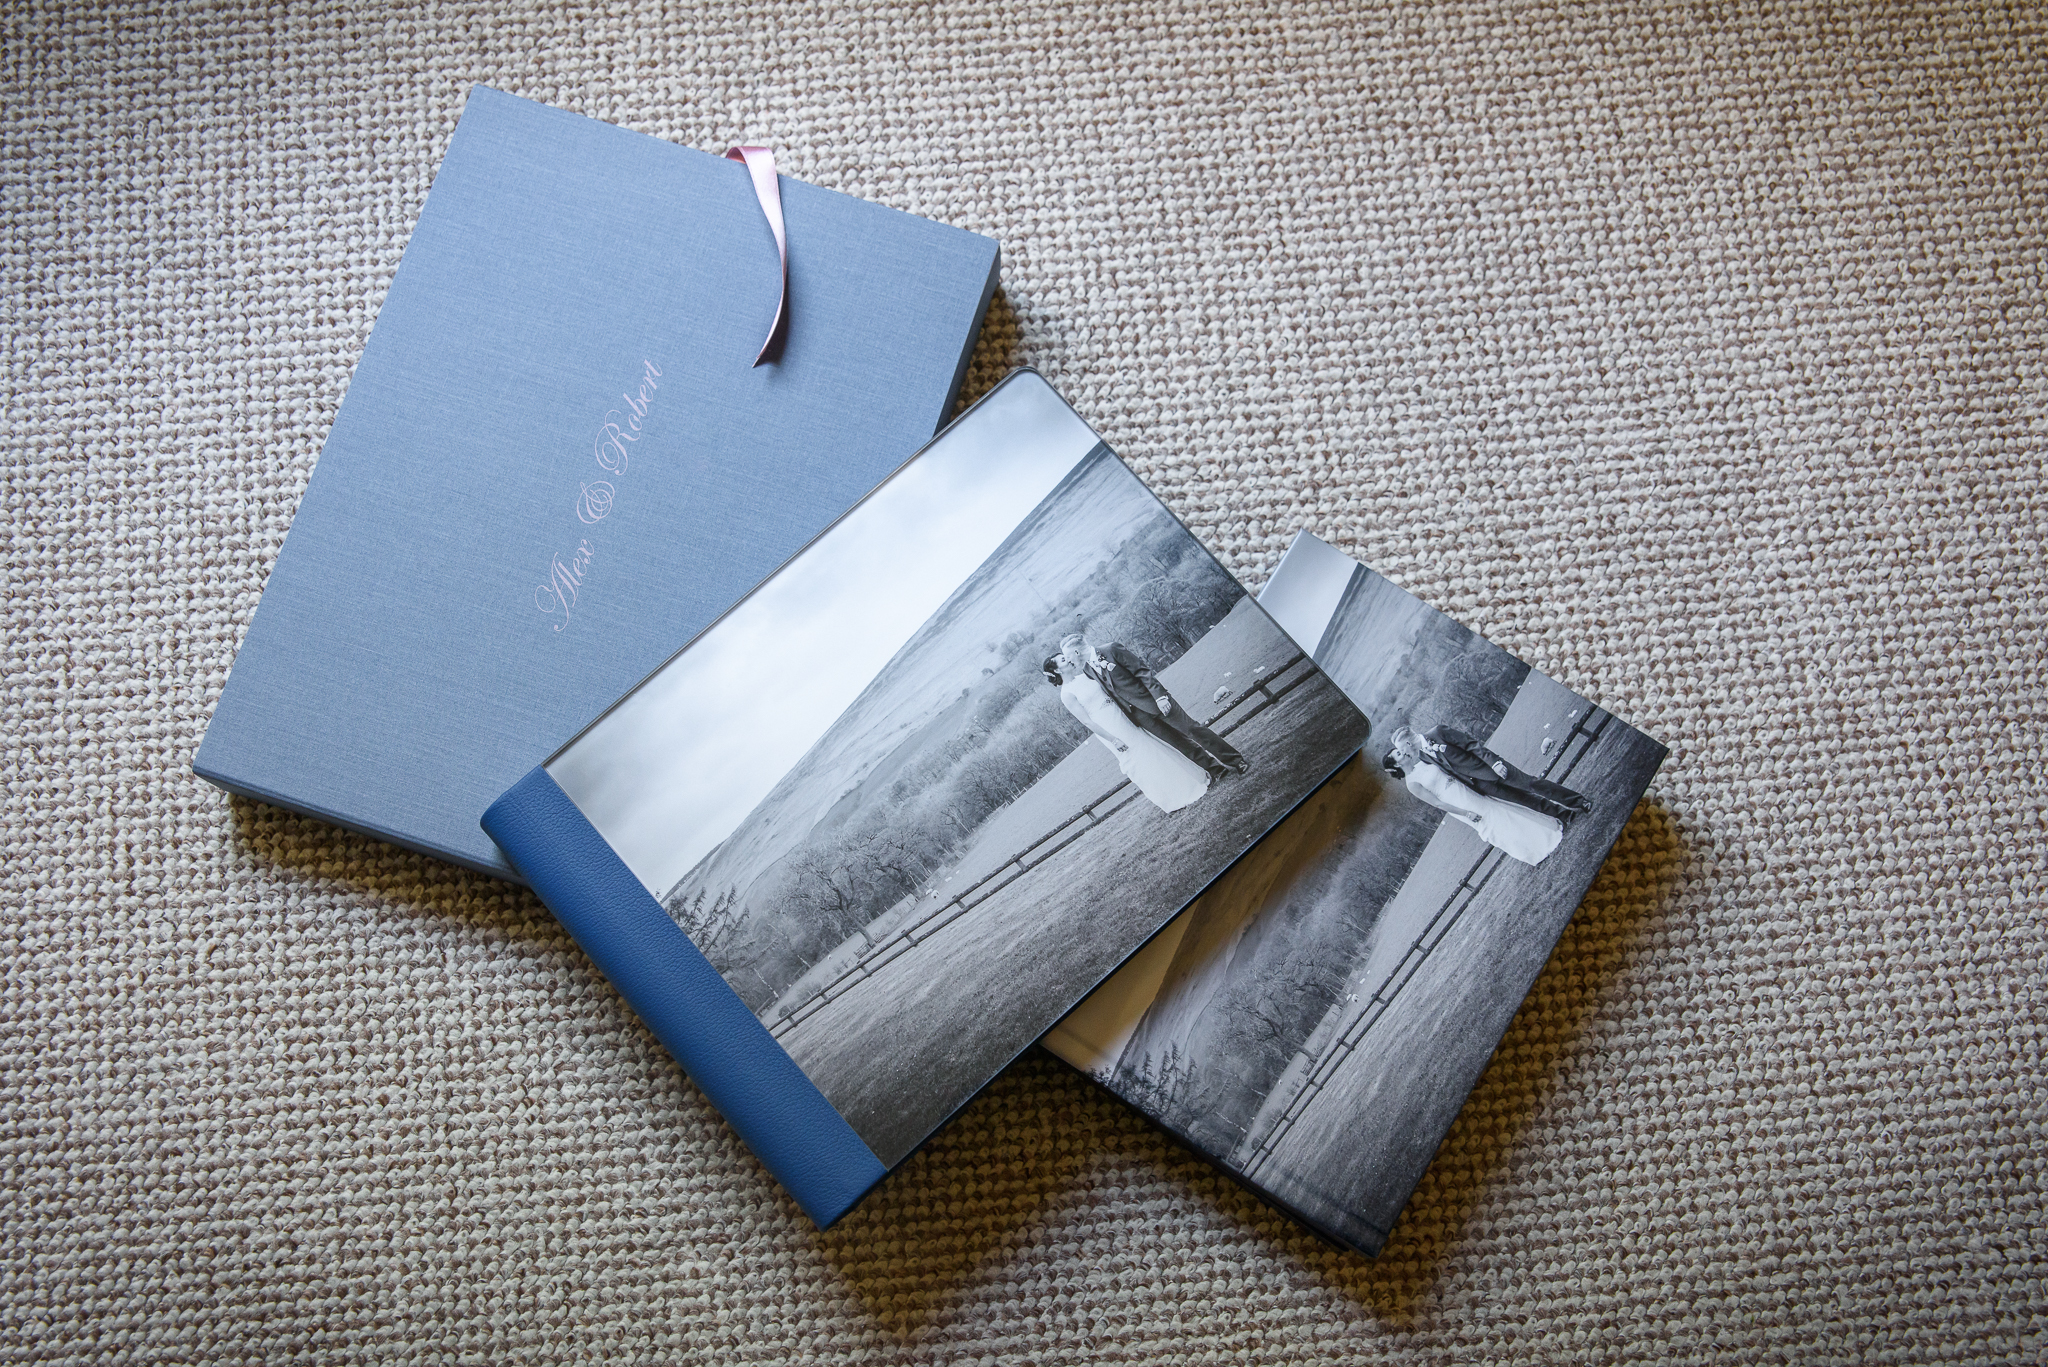 Luxury wedding album with acrylic cover and blue leather spine